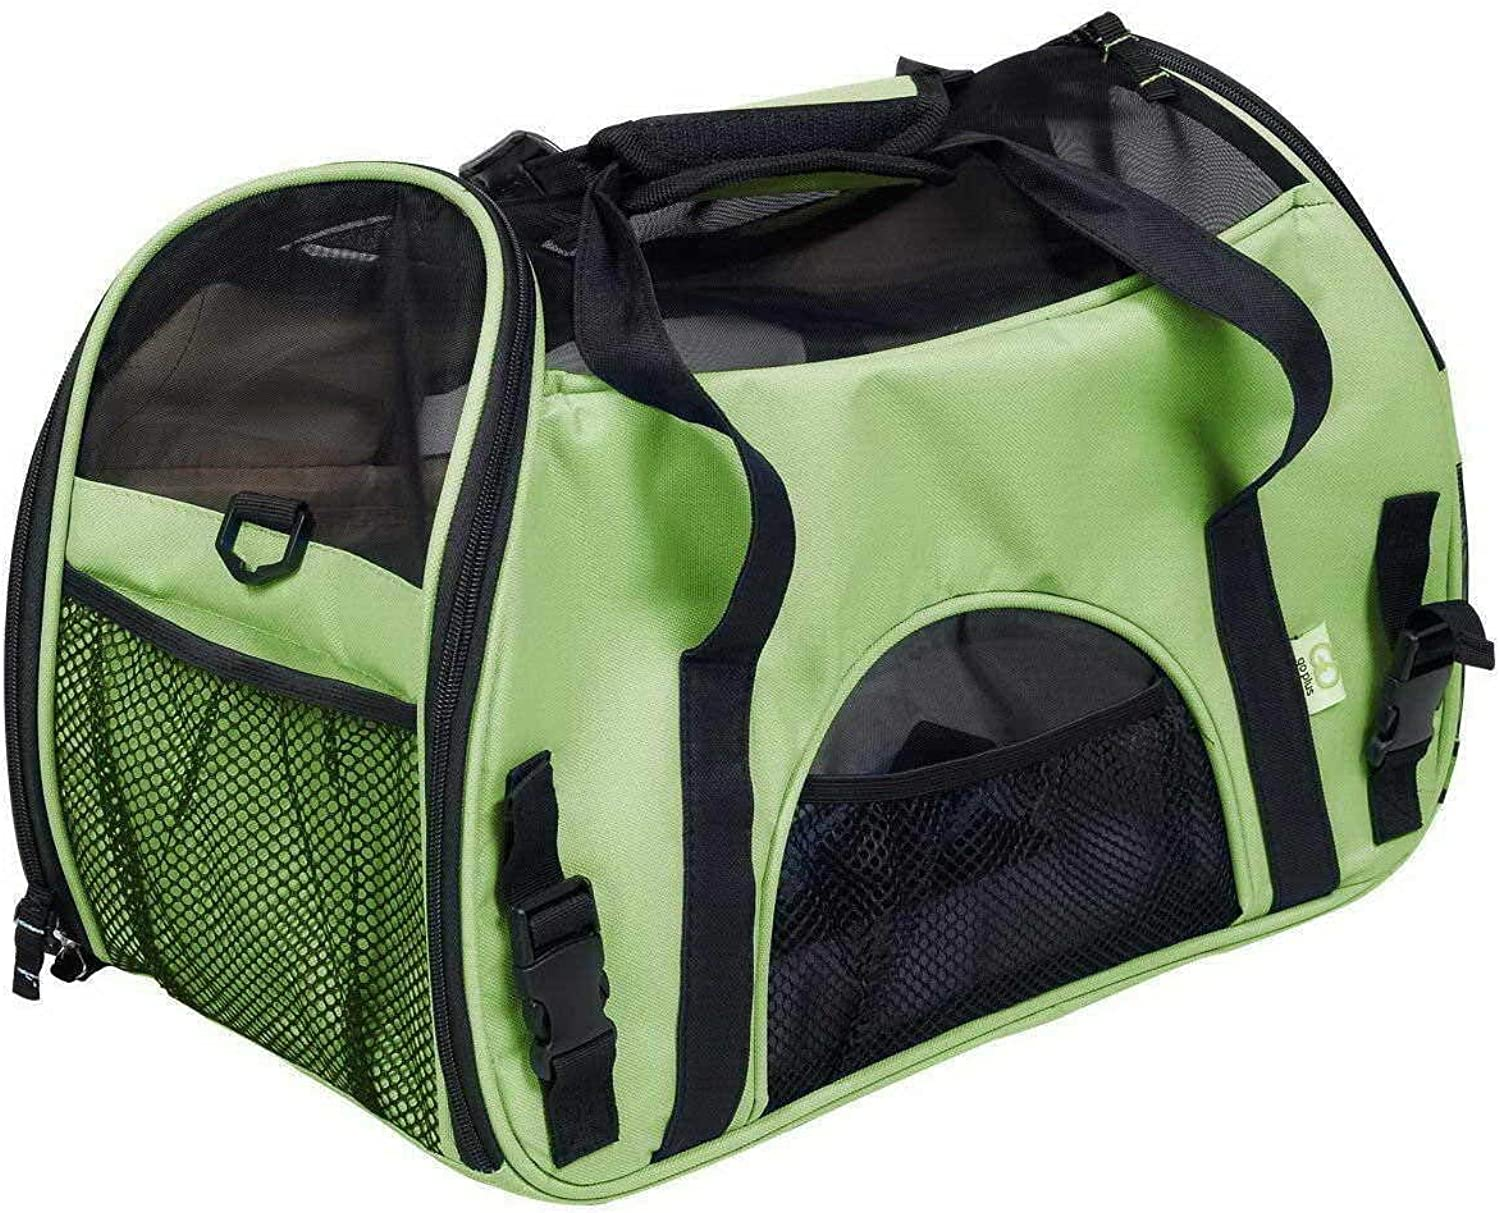 Pet Travel Carrier Pet Carrier Travling Bags Dog Cat Carrier Backpack Hands Free Pet Puppy Outdoor Bag Tote Ourtdoor Pet Bag (color   Green, Size   L)